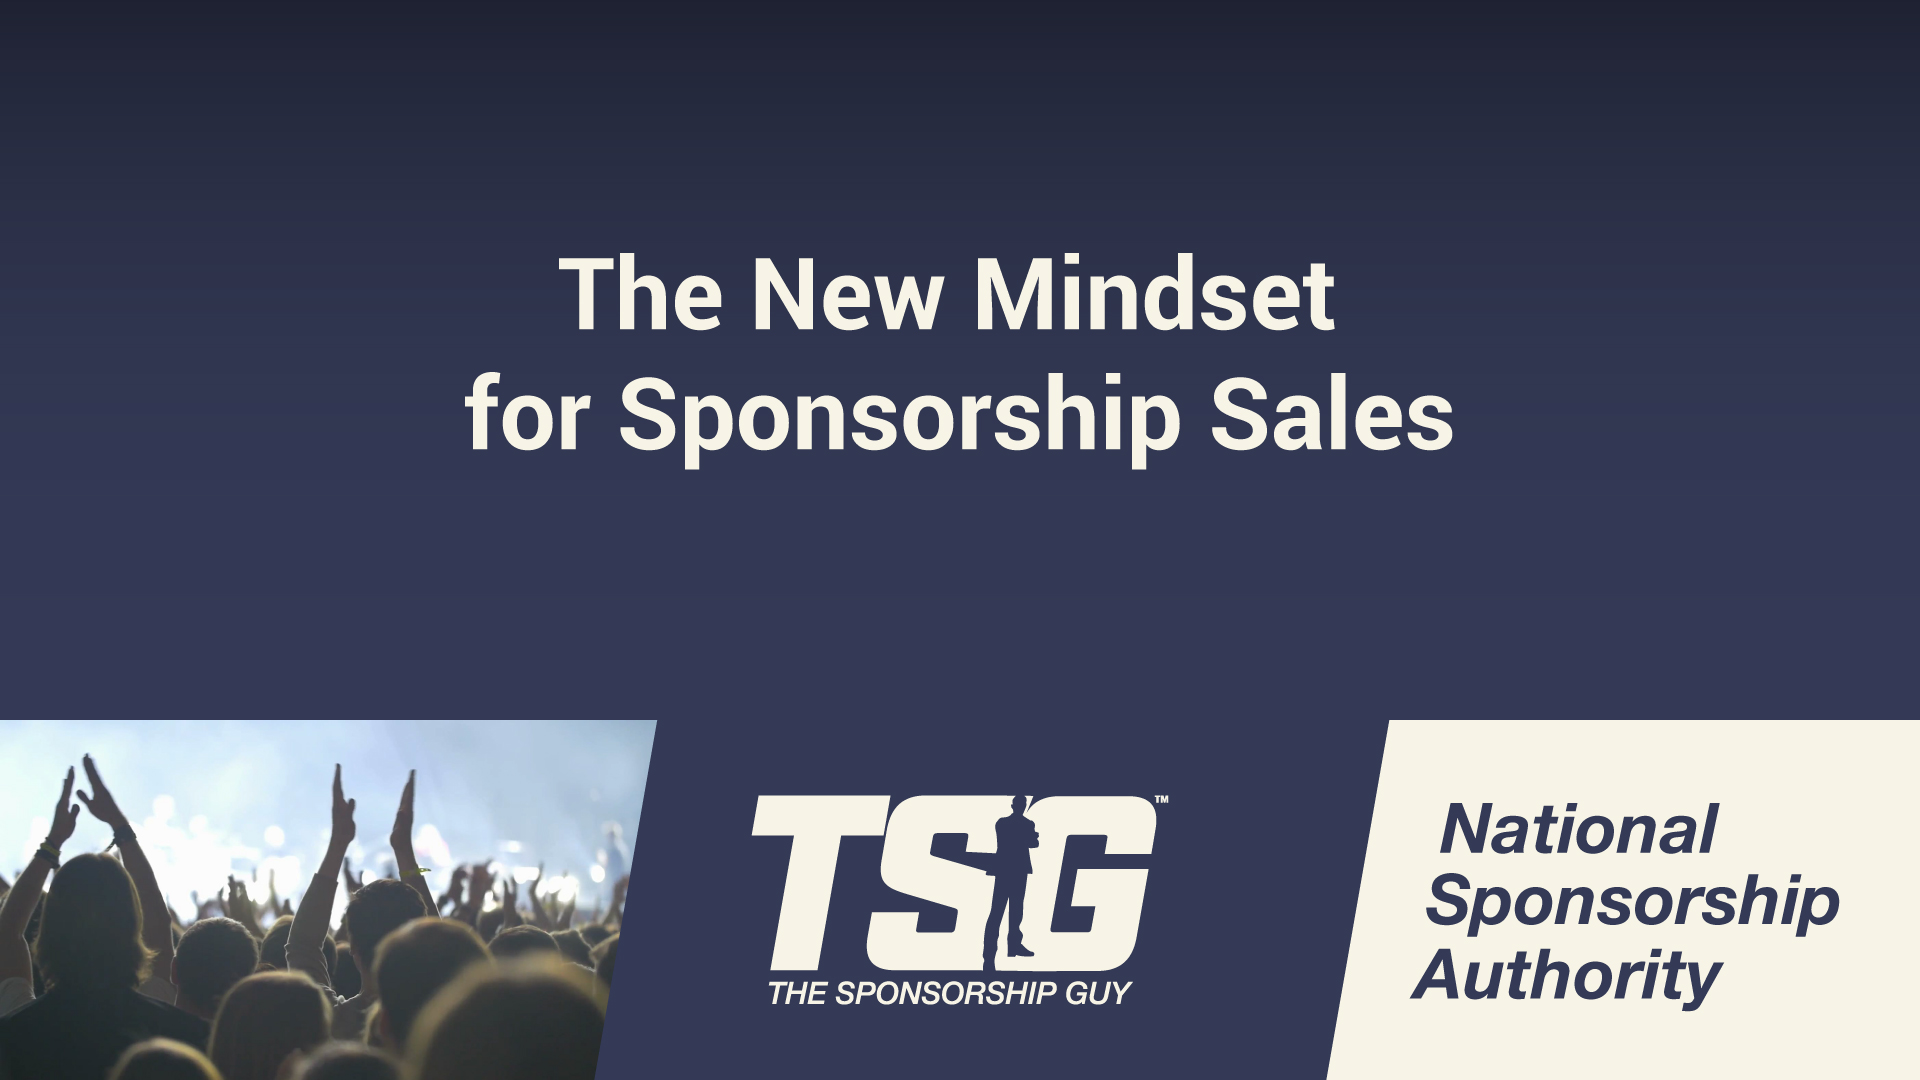 The New Mindset for Sponsorship Sales